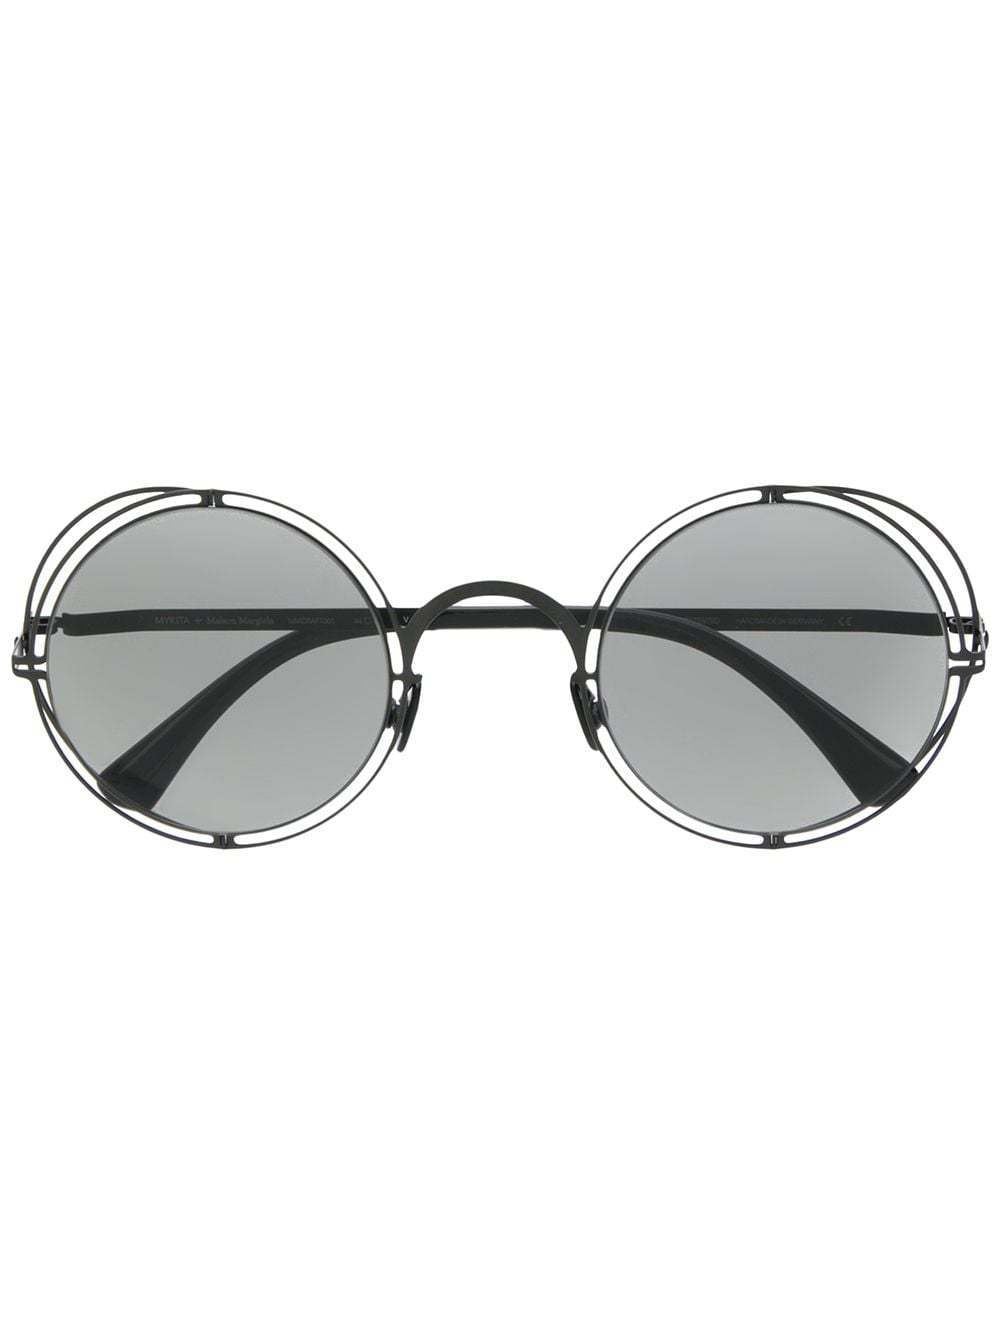 shop mykita accessories